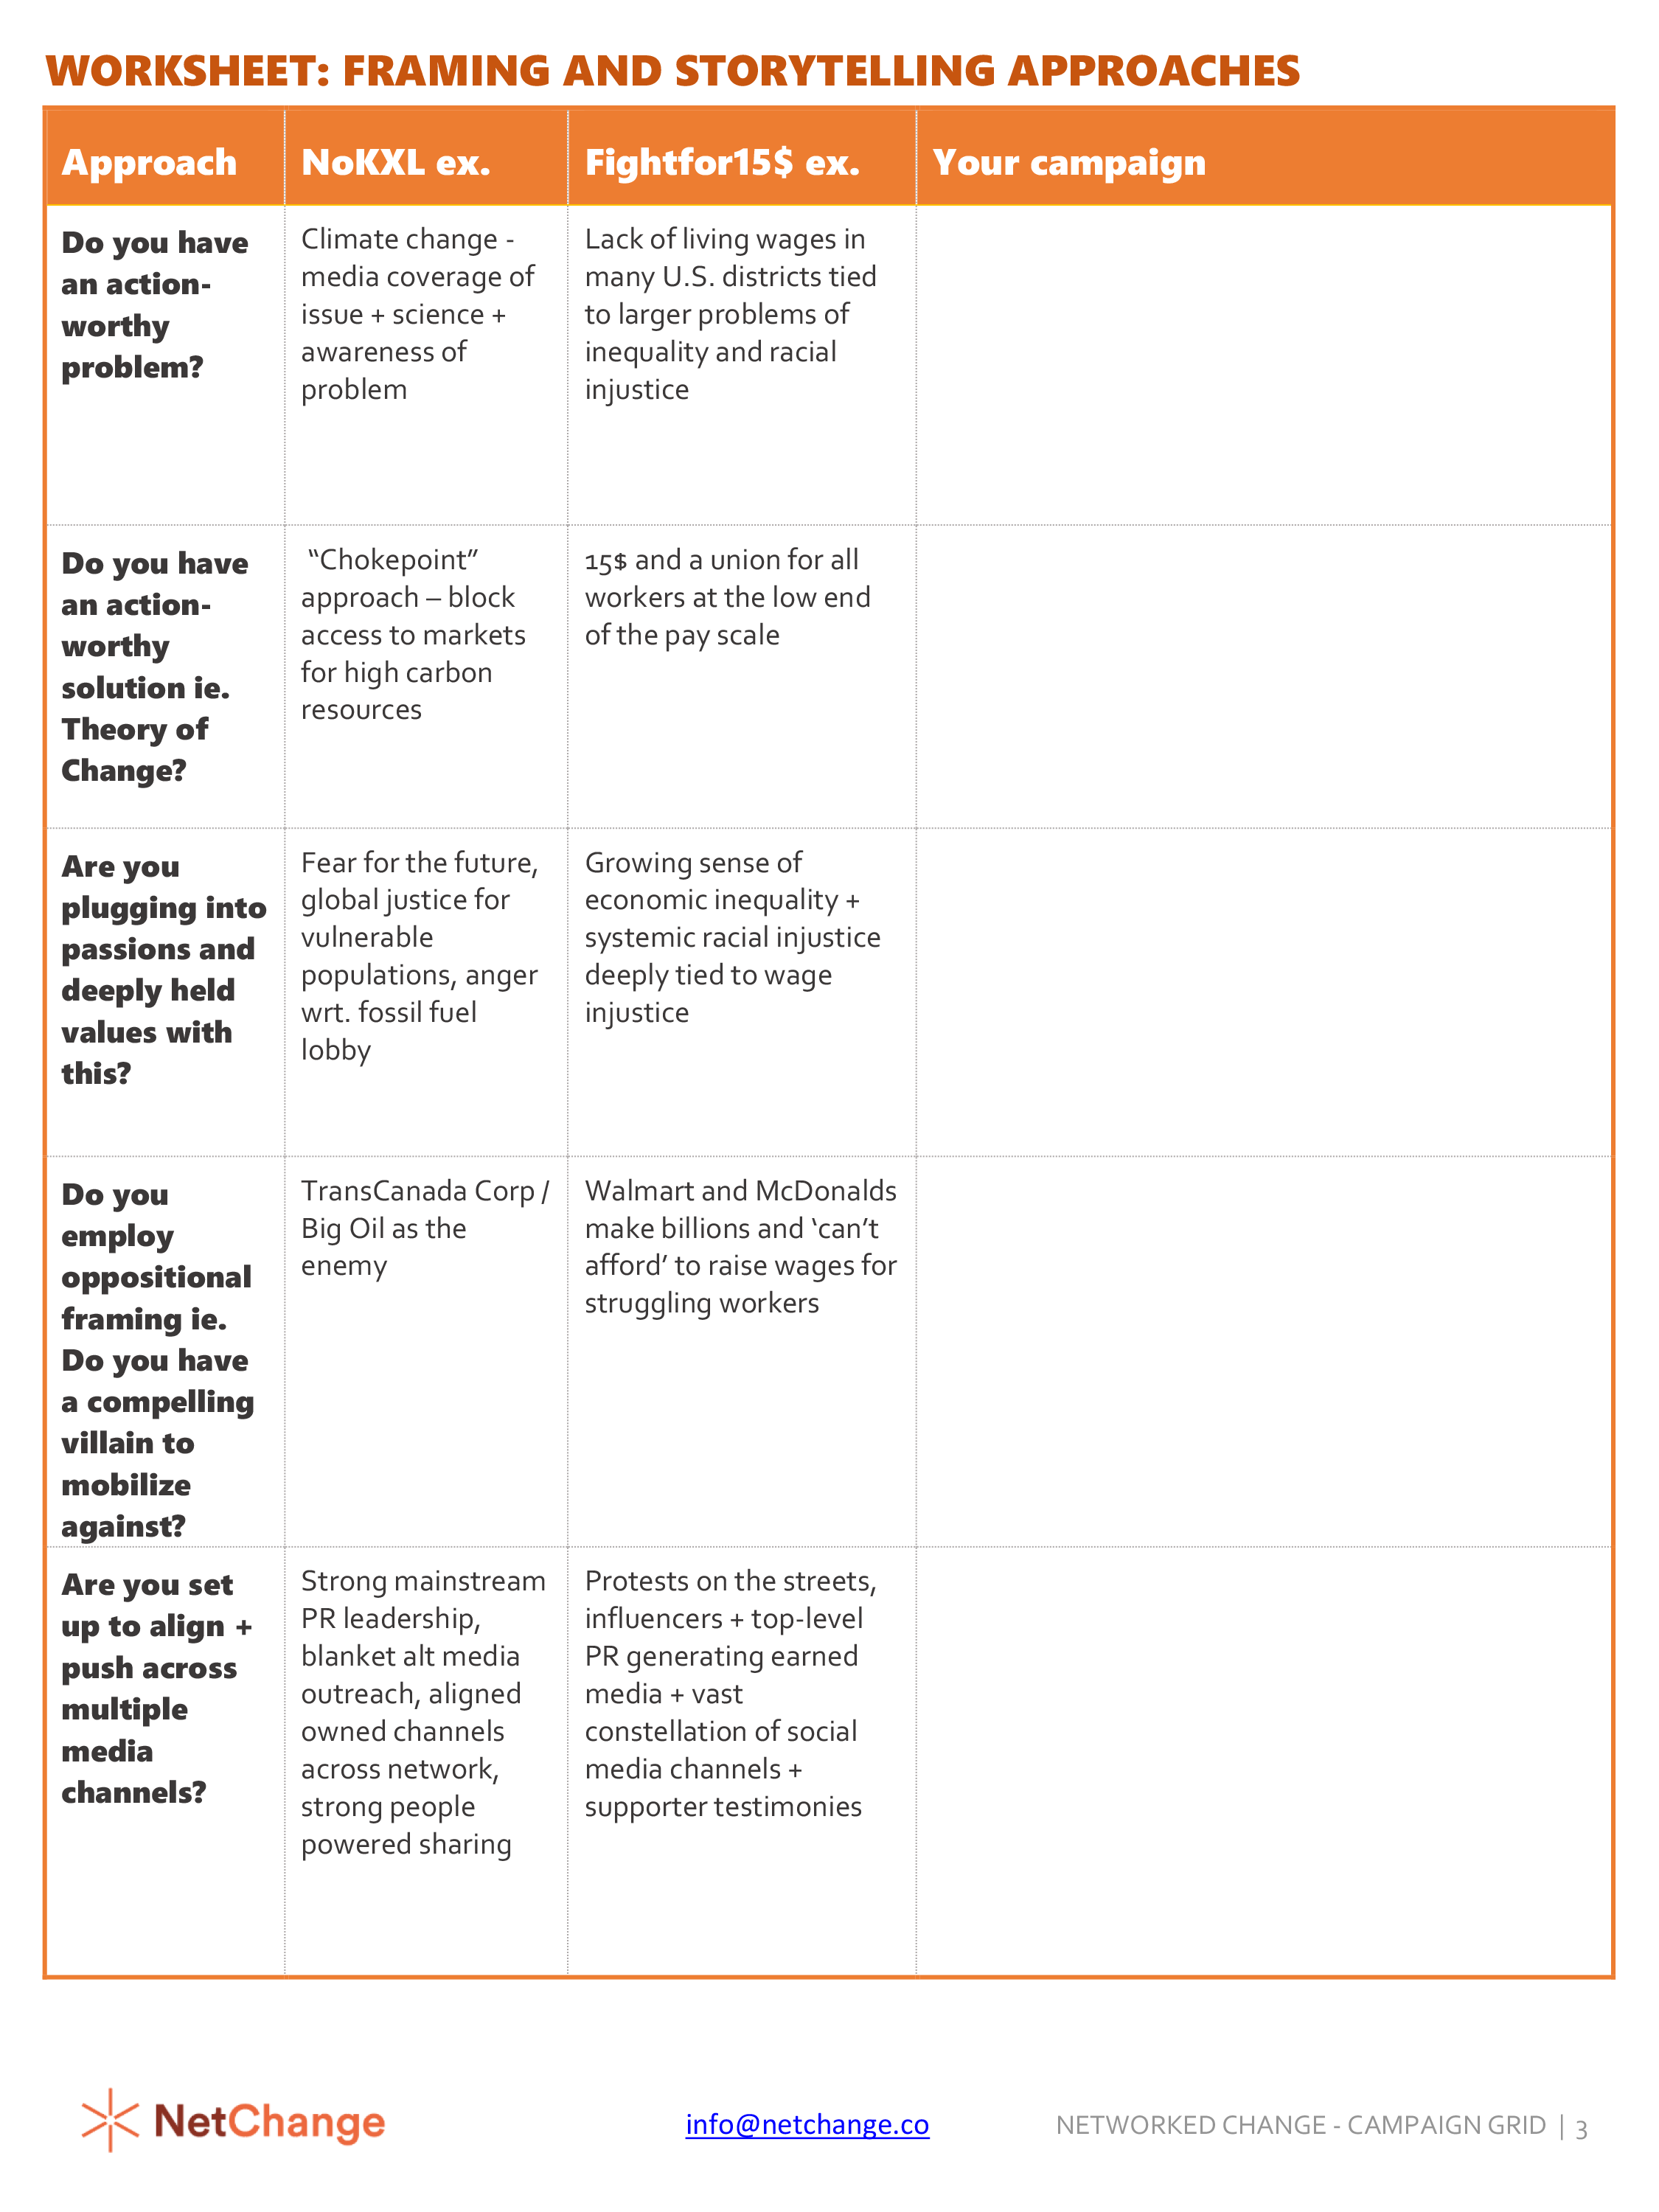 Design Thinking Worksheet worksheetsaquatechnicsbiz – Constellation Worksheet